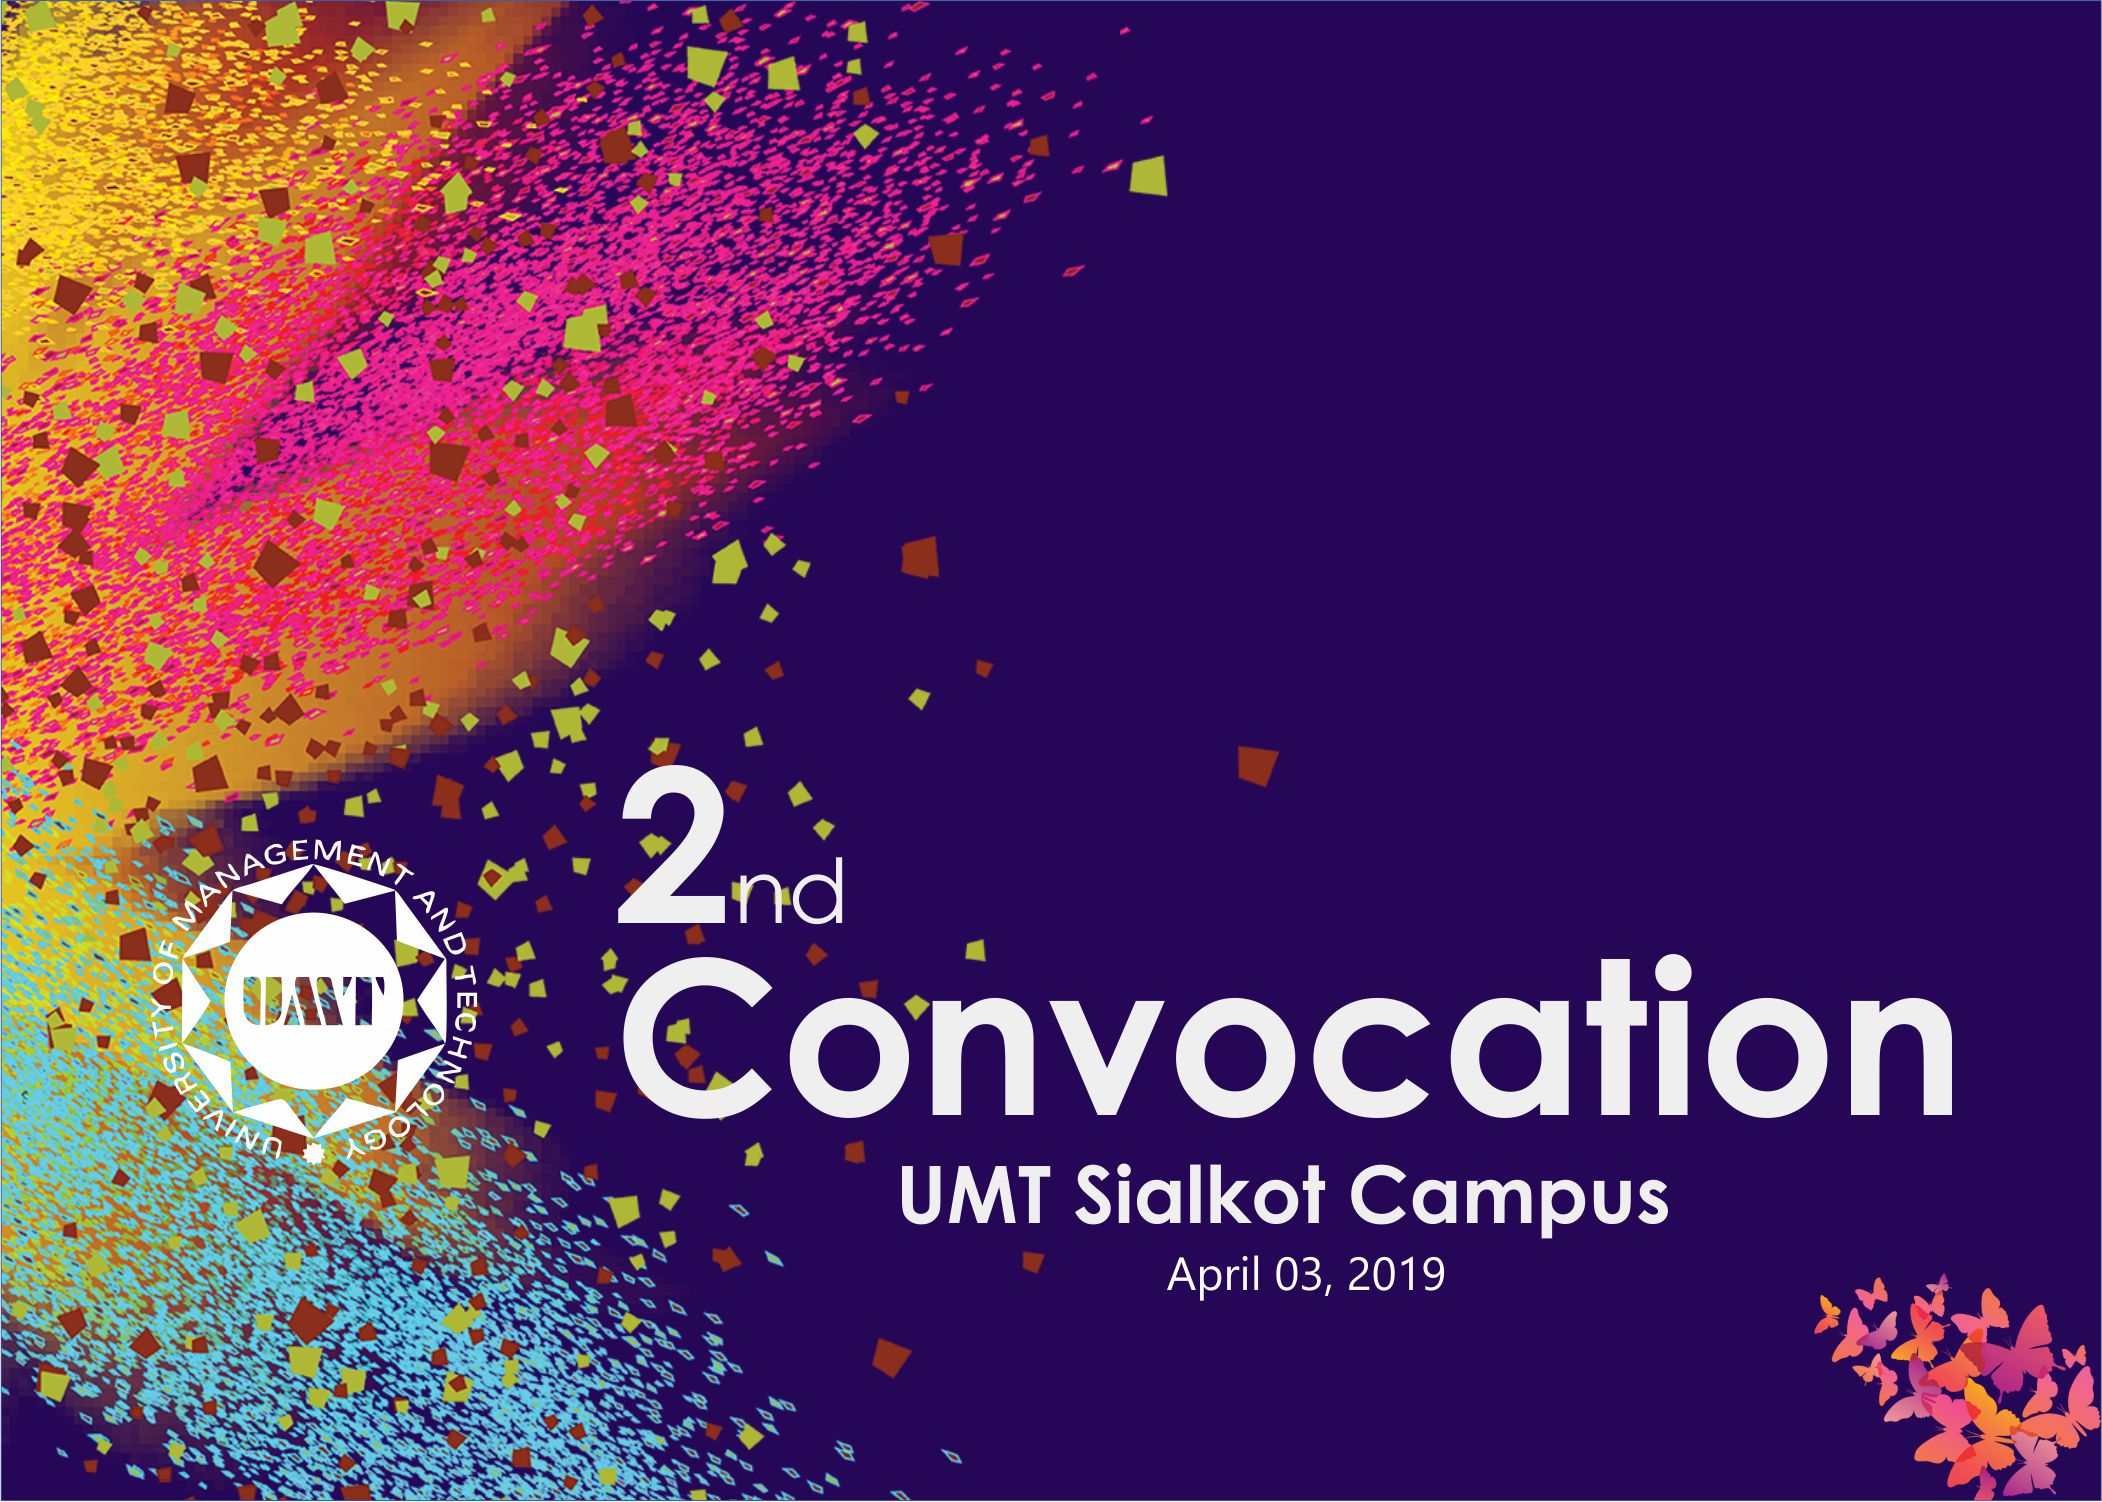 UMT will remain closed on Wednesday, April 03, 2019 on account of 2nd Convocation of UMT Sialkot